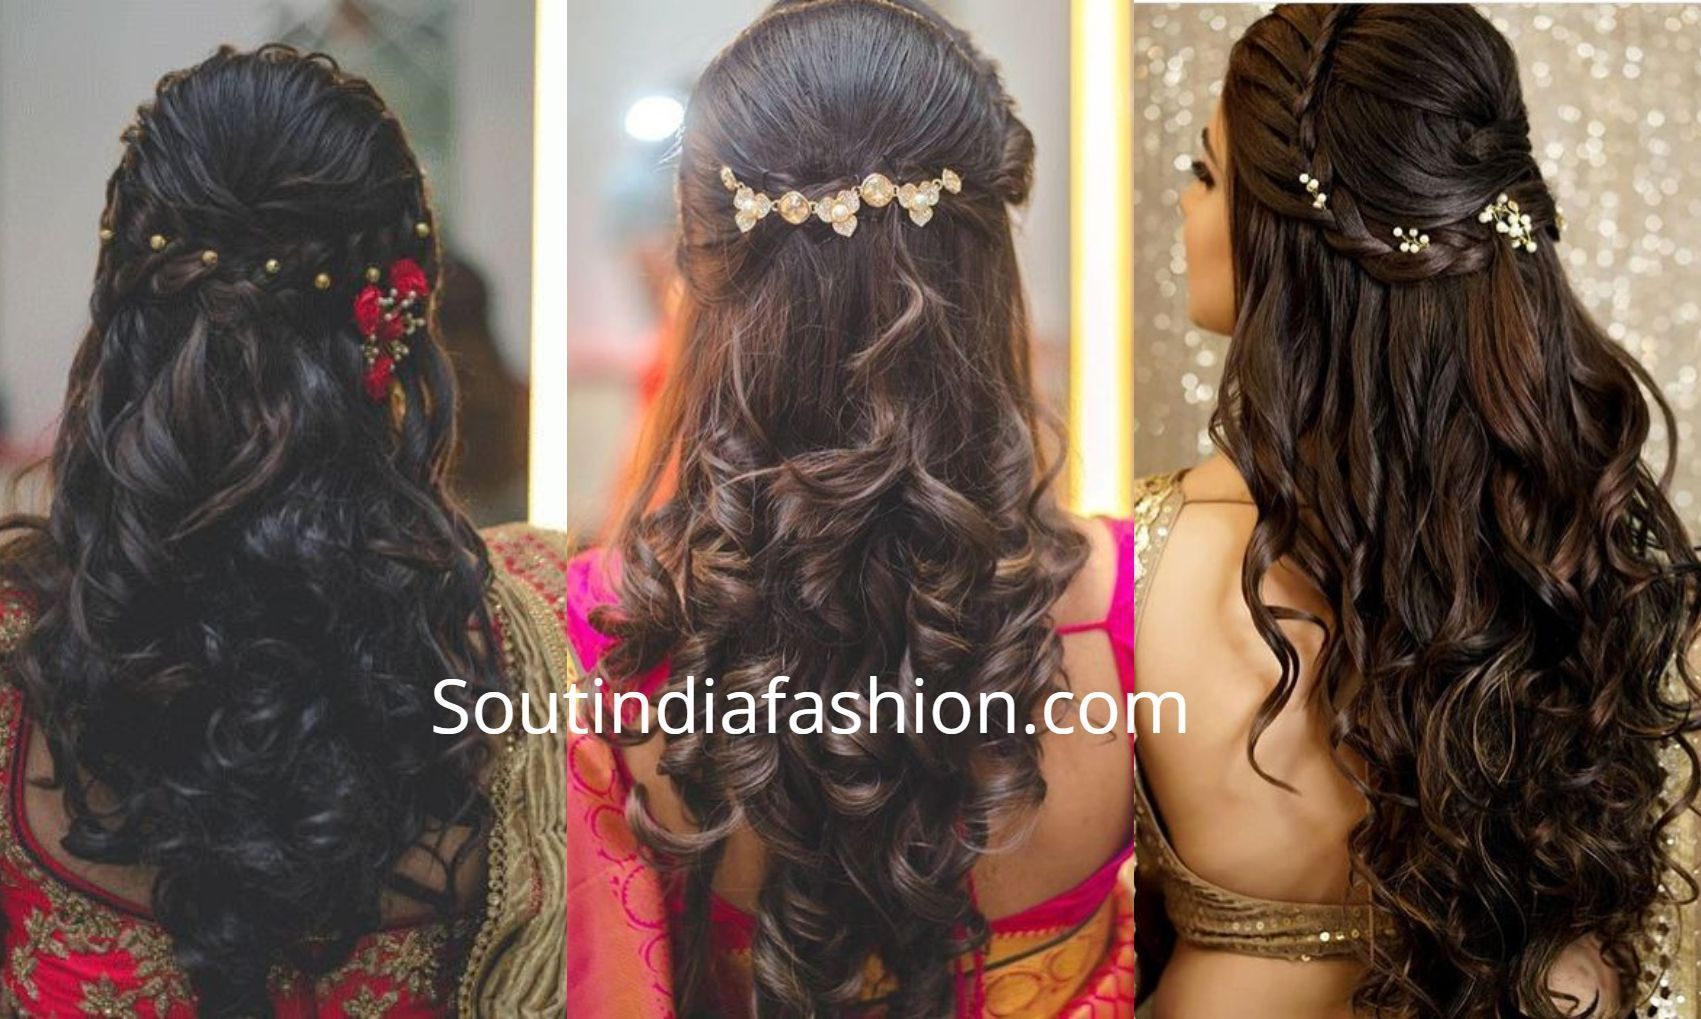 15 Popular South Indian Bridal Hairstyles For Engagement Tbg Girl Style Bridal Hairstyle Indian Wedding South Indian Wedding Hairstyles Indian Hairstyles